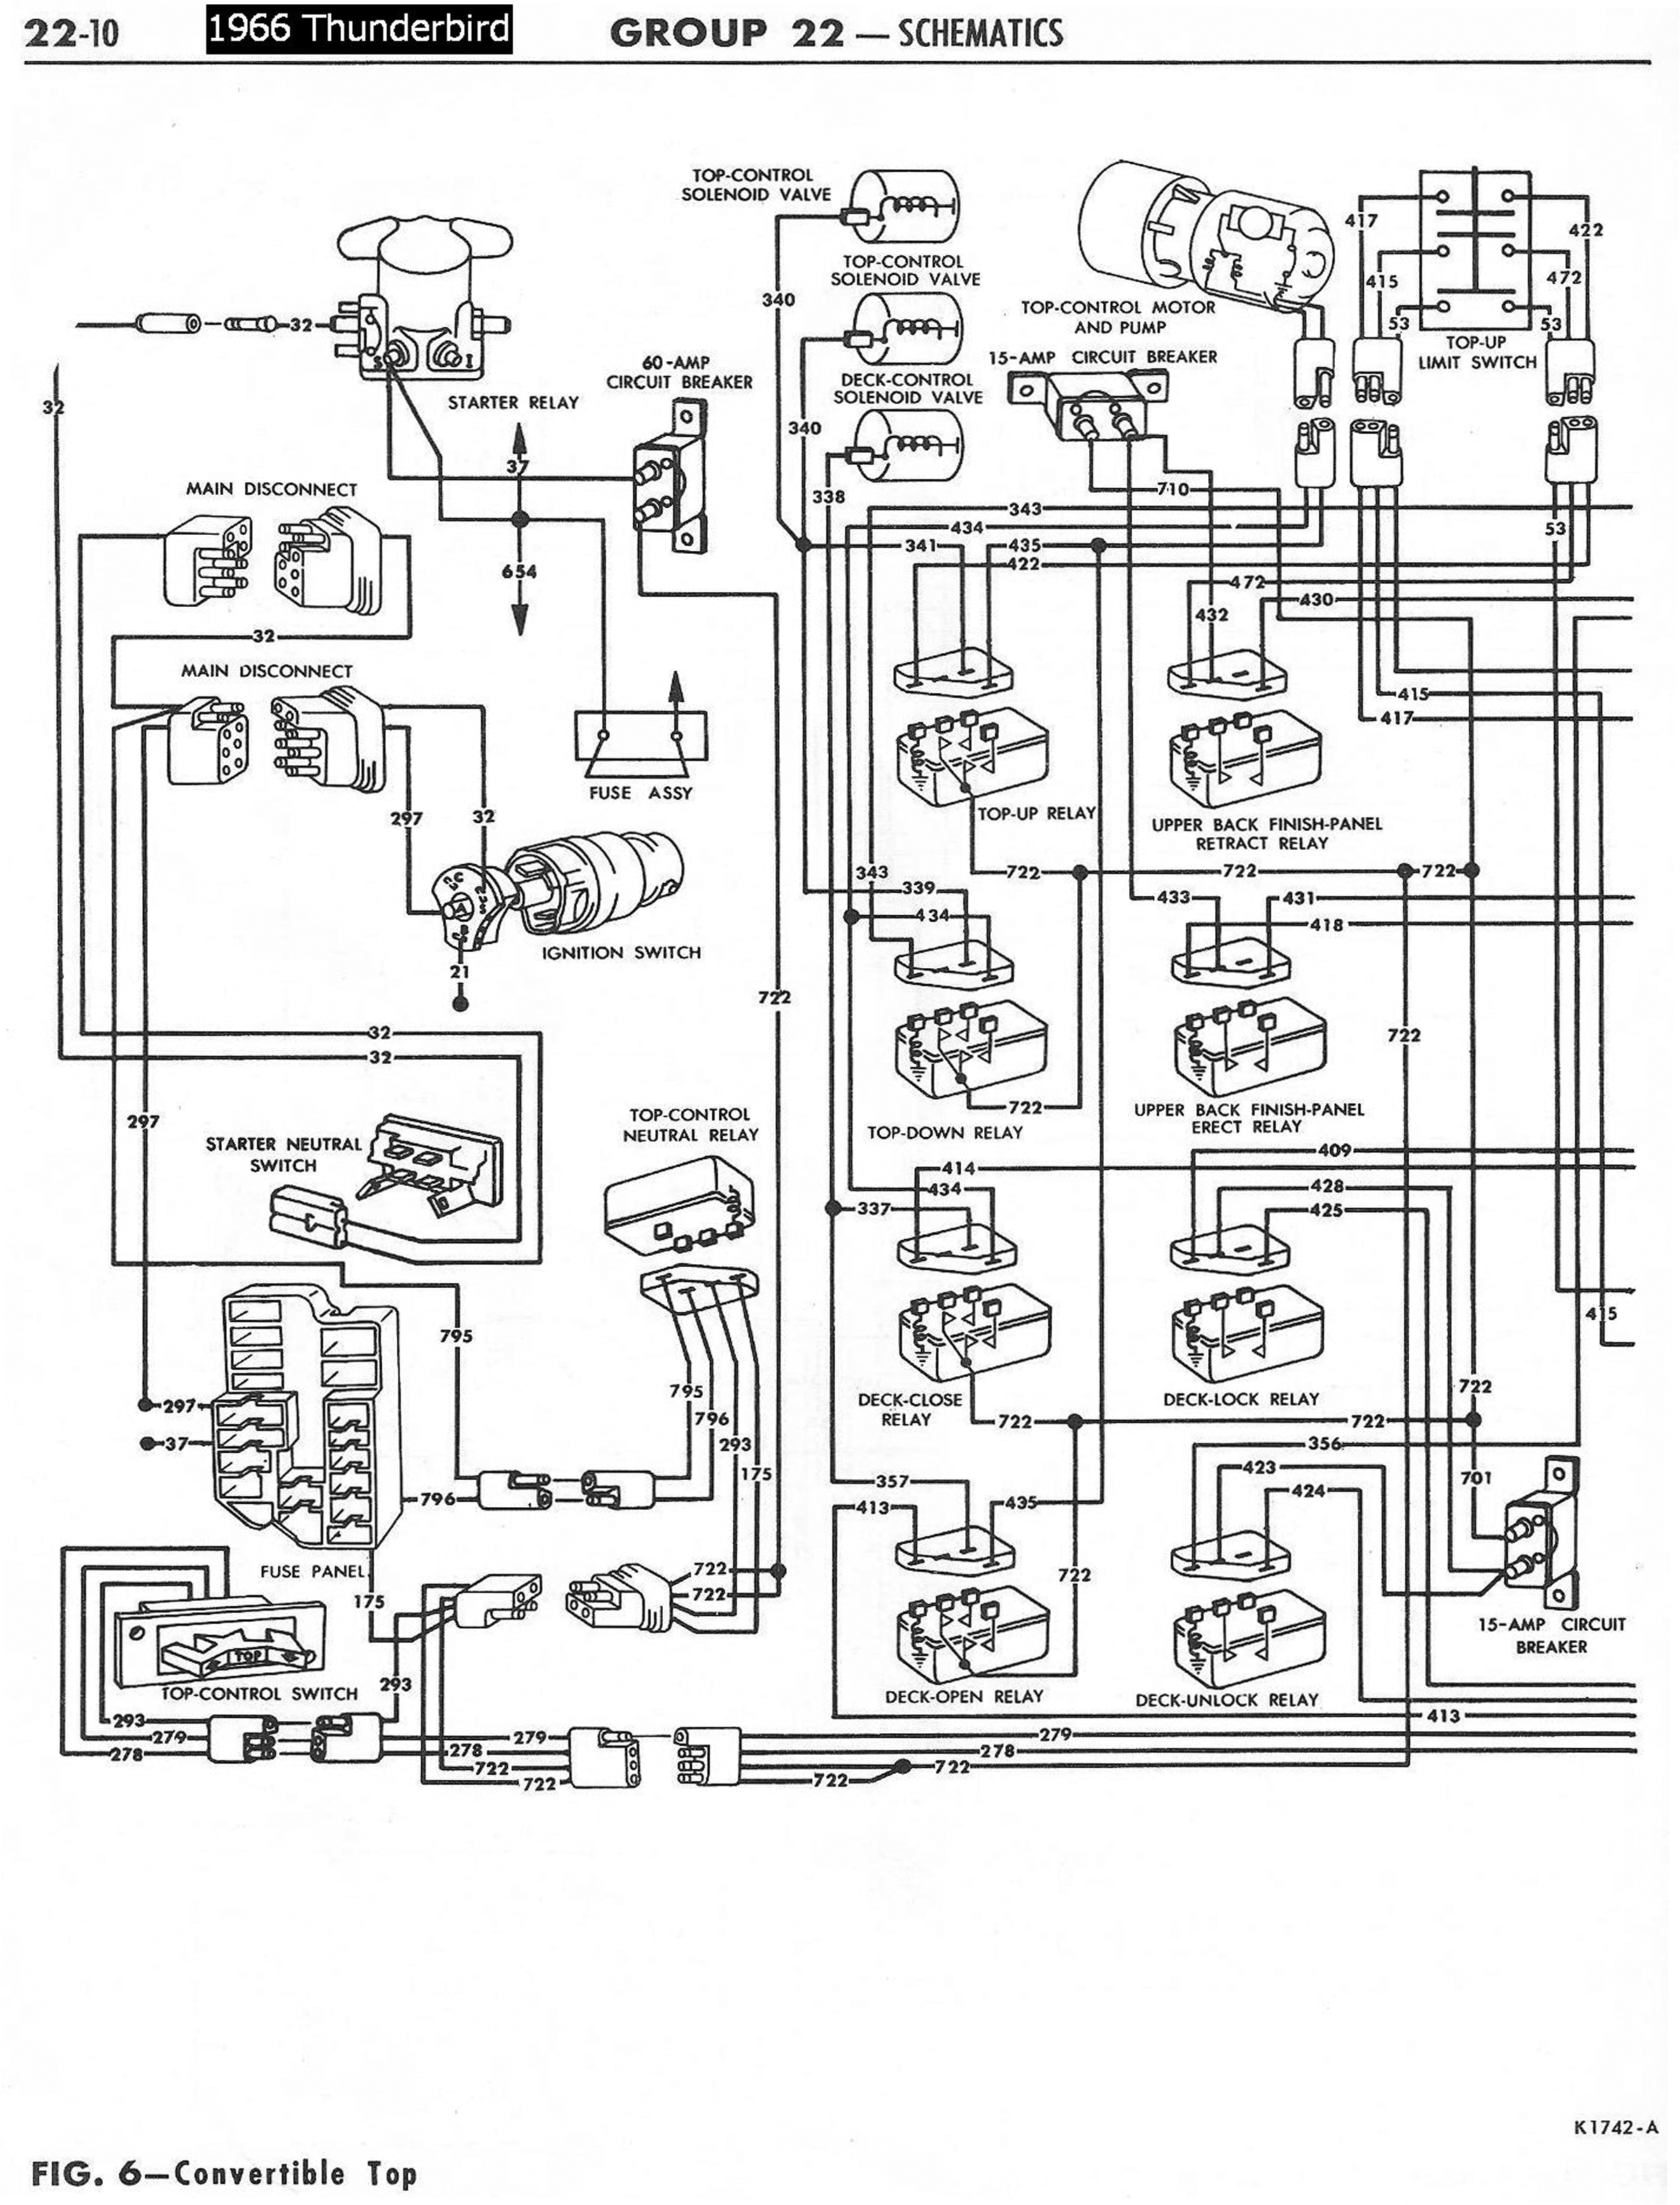 Thunderbird Wiring Diagram Furthermore Ford Thunderbird Wiring ... on 1954 dodge wiring diagram, 1964 mustang wiring diagram, 1949 cadillac wiring diagram, 1926 ford wiring diagram, 1940 buick wiring diagram, 1967 ford wiring diagram, 1937 ford wiring diagram, 1957 pontiac wiring diagram, 1958 ford continental kit, 1957 plymouth wiring diagram, 1957 dodge wiring diagram, 59 ford wiring diagram, 1930 ford wiring diagram, 1953 buick wiring diagram, 1950 ford wiring diagram, 1931 ford model a wiring diagram, 1955 dodge wiring diagram, 1955 buick wiring diagram, 1963 ford wiring diagram, 1950 cadillac wiring diagram,